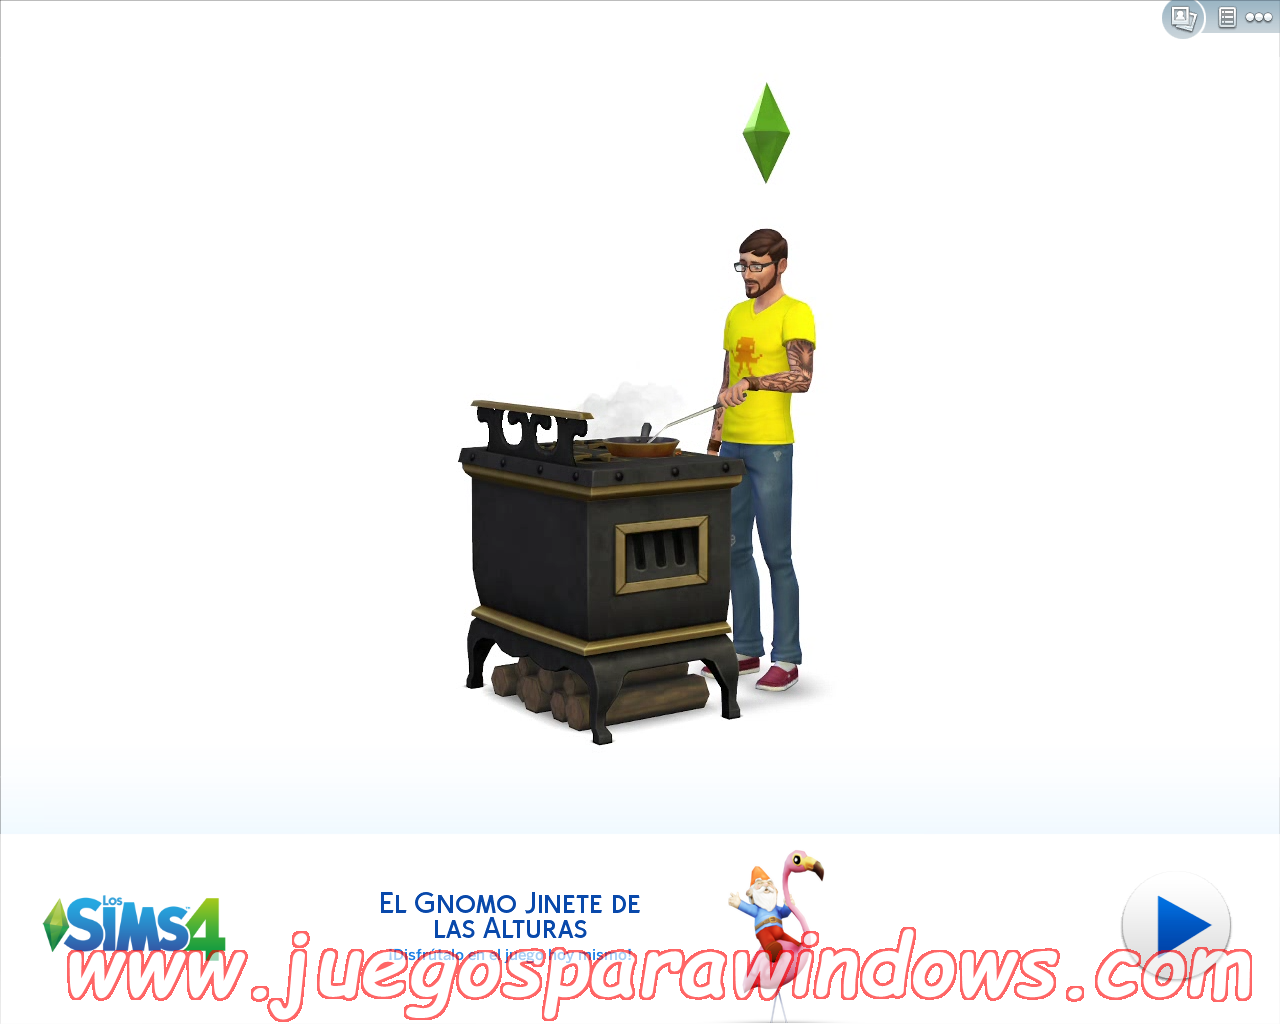 Los Sims 4 Digital Deluxe Edition ESPAÑOL PC Full + Update v1.4.83.1010 Incl DLC (RELOADED) 6